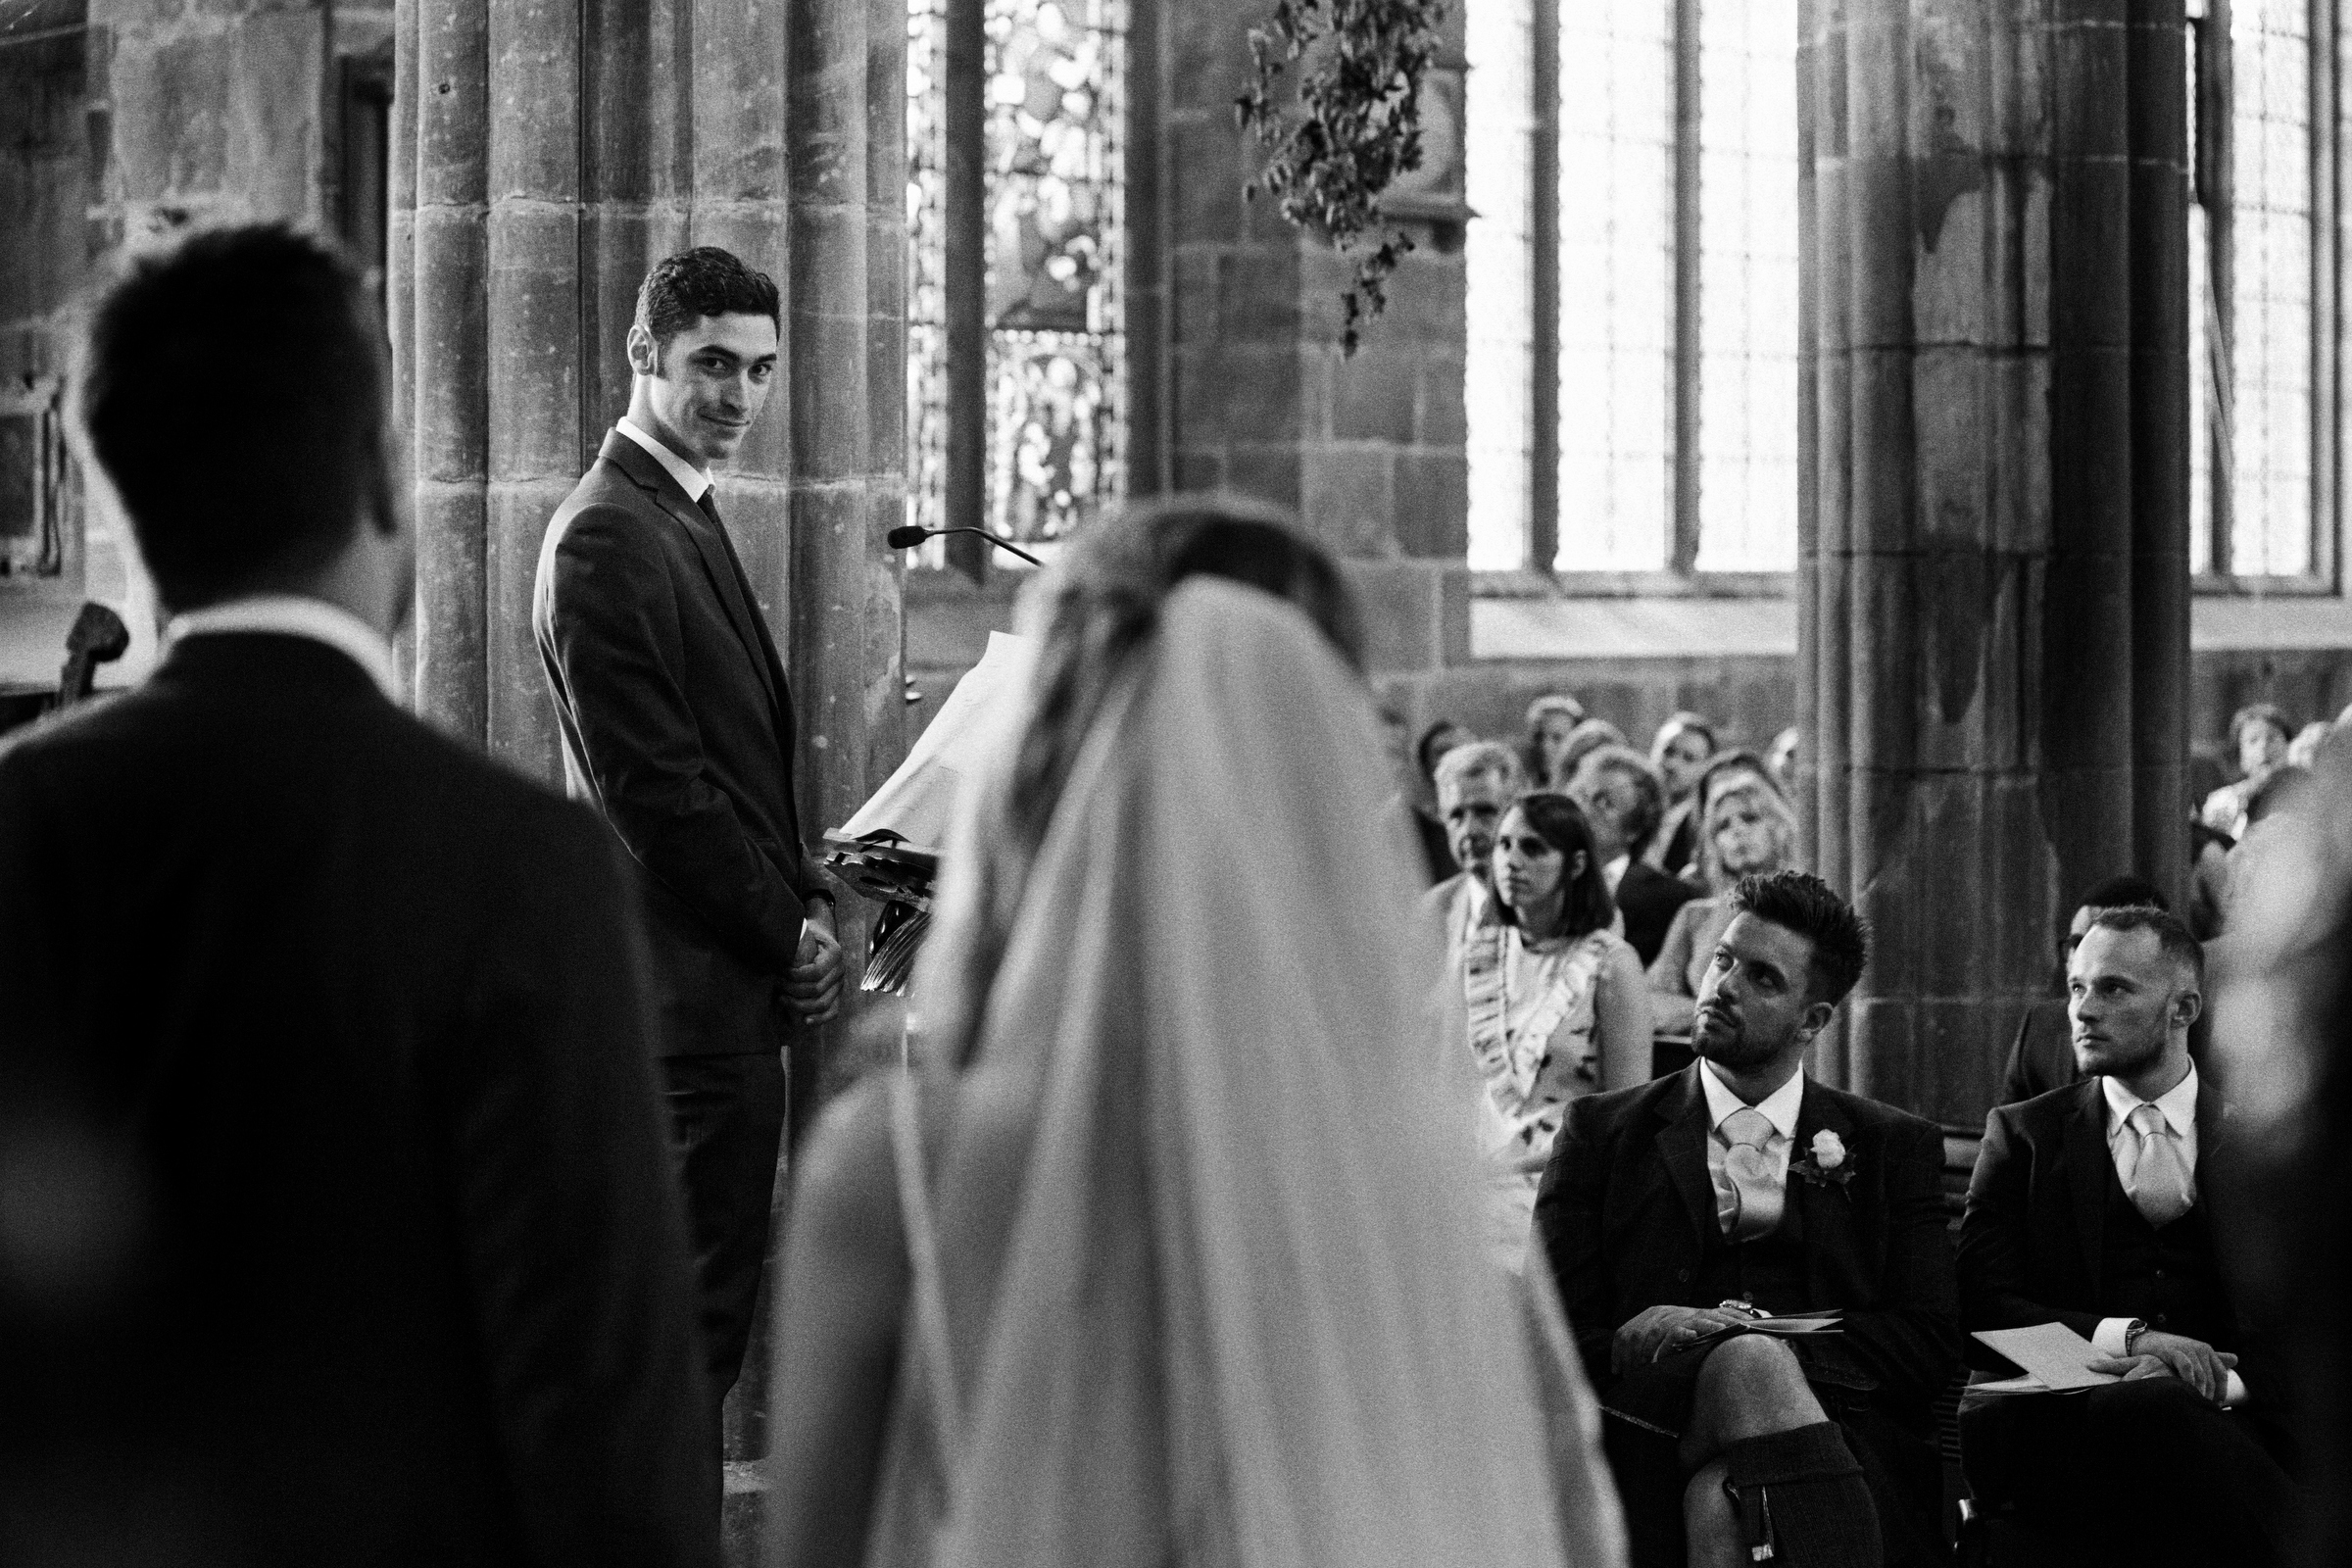 Brother looks toward bride during ceremony - photo by Jeff Ascough